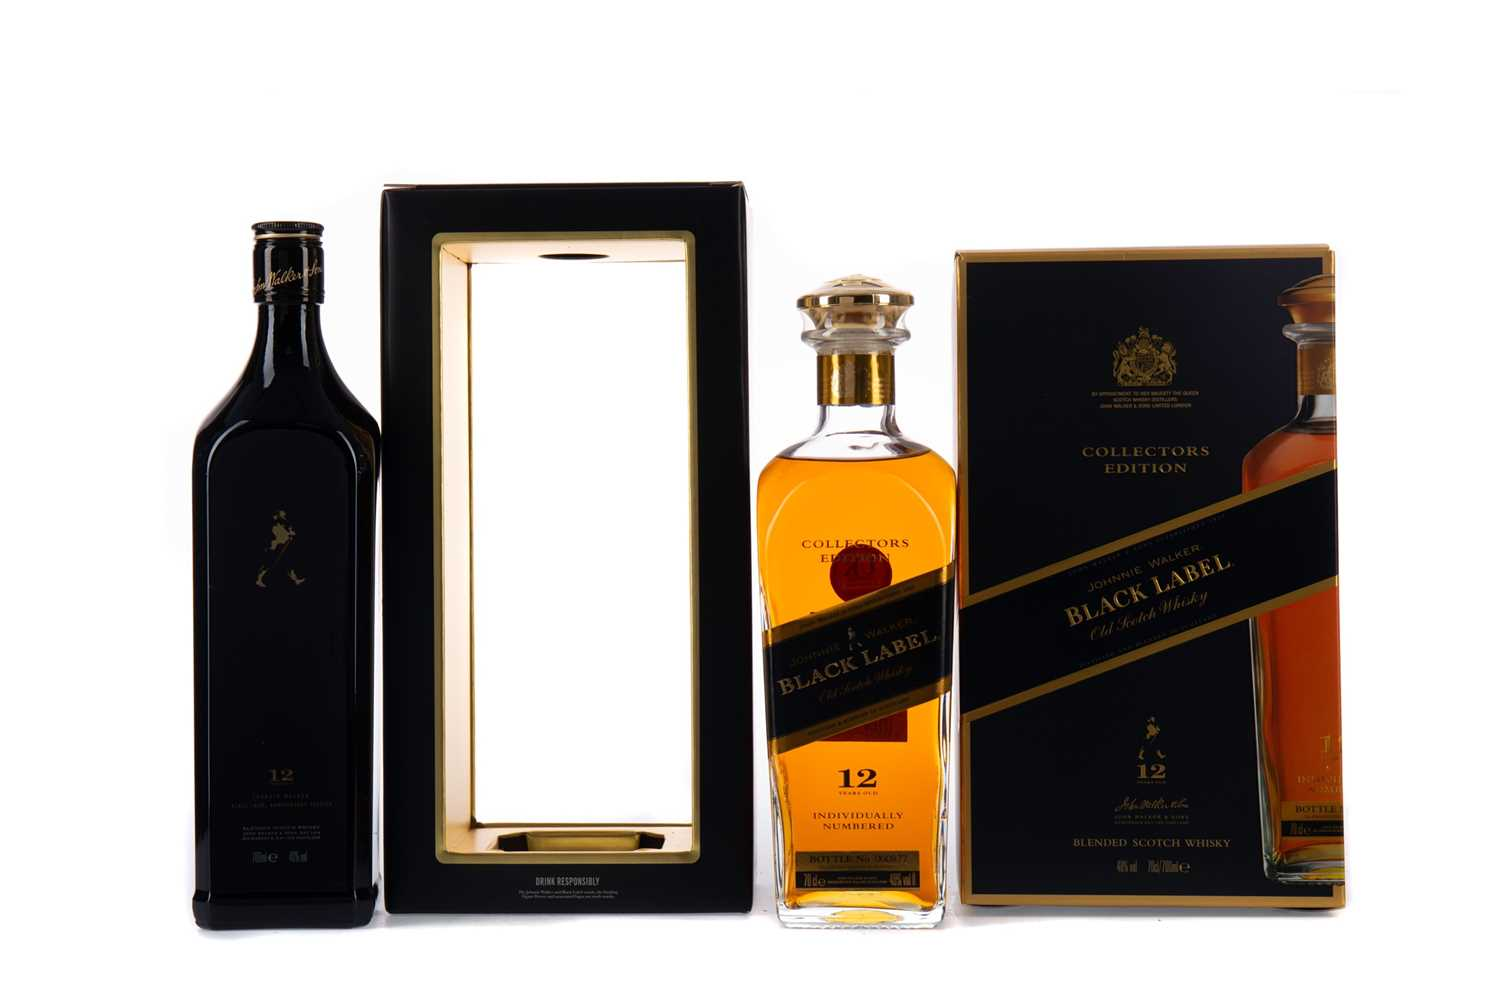 Lot 48 - JOHNNIE WALKER BLACK LABEL COLLECTORS EDITION, AND ANNIVERSARY EDITION